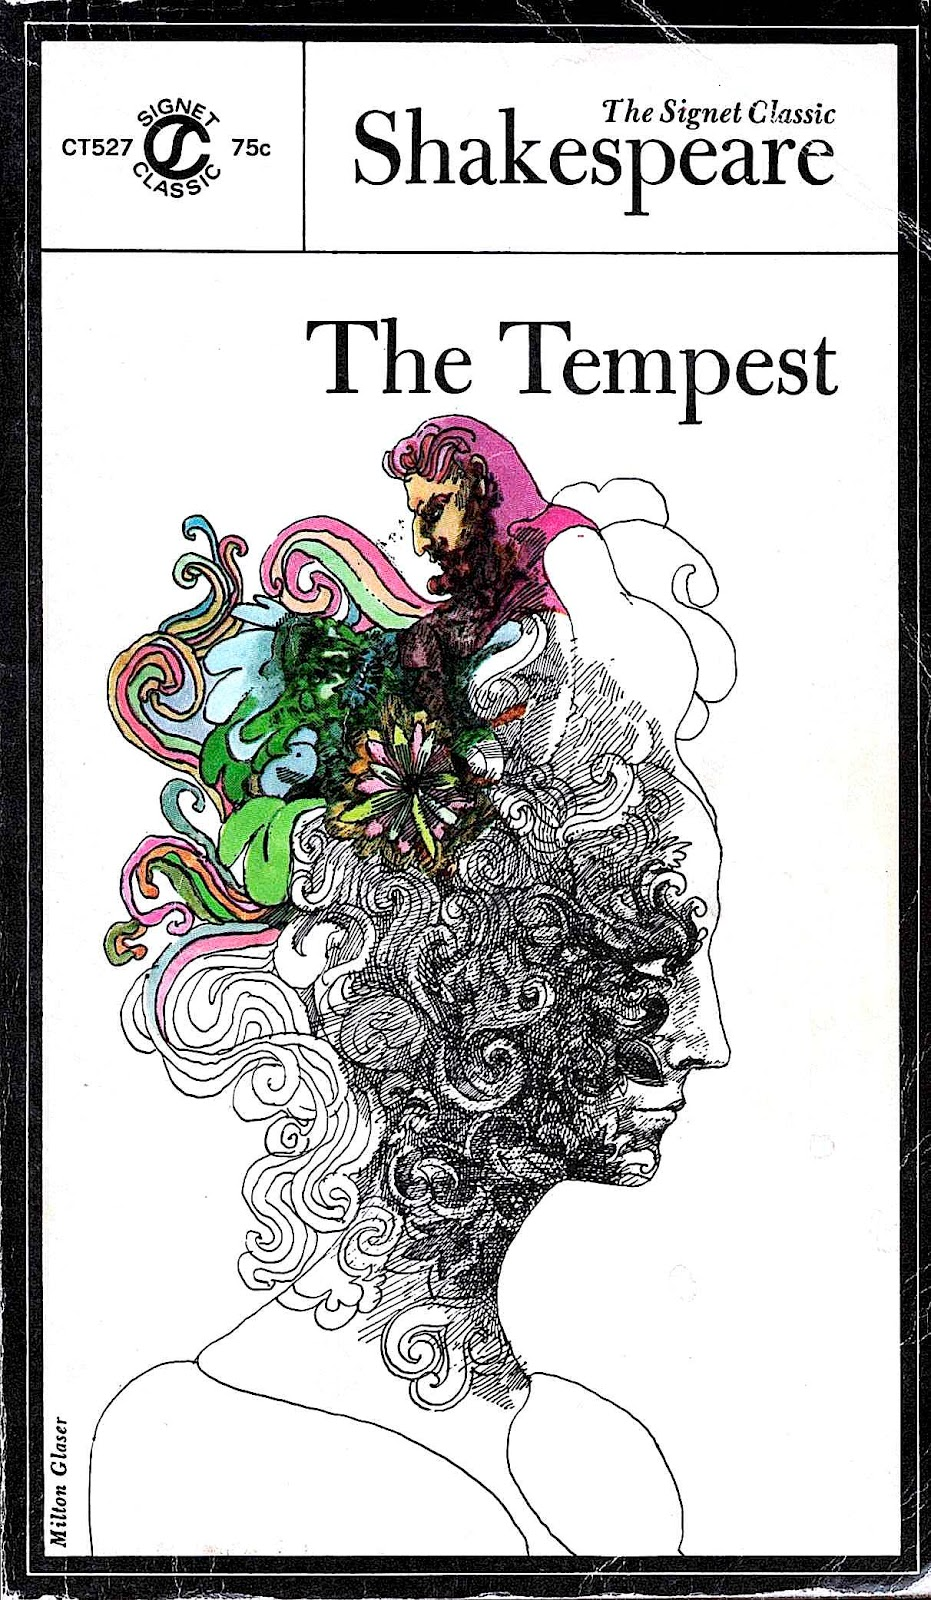 Milton Glaser, the tempest book cover